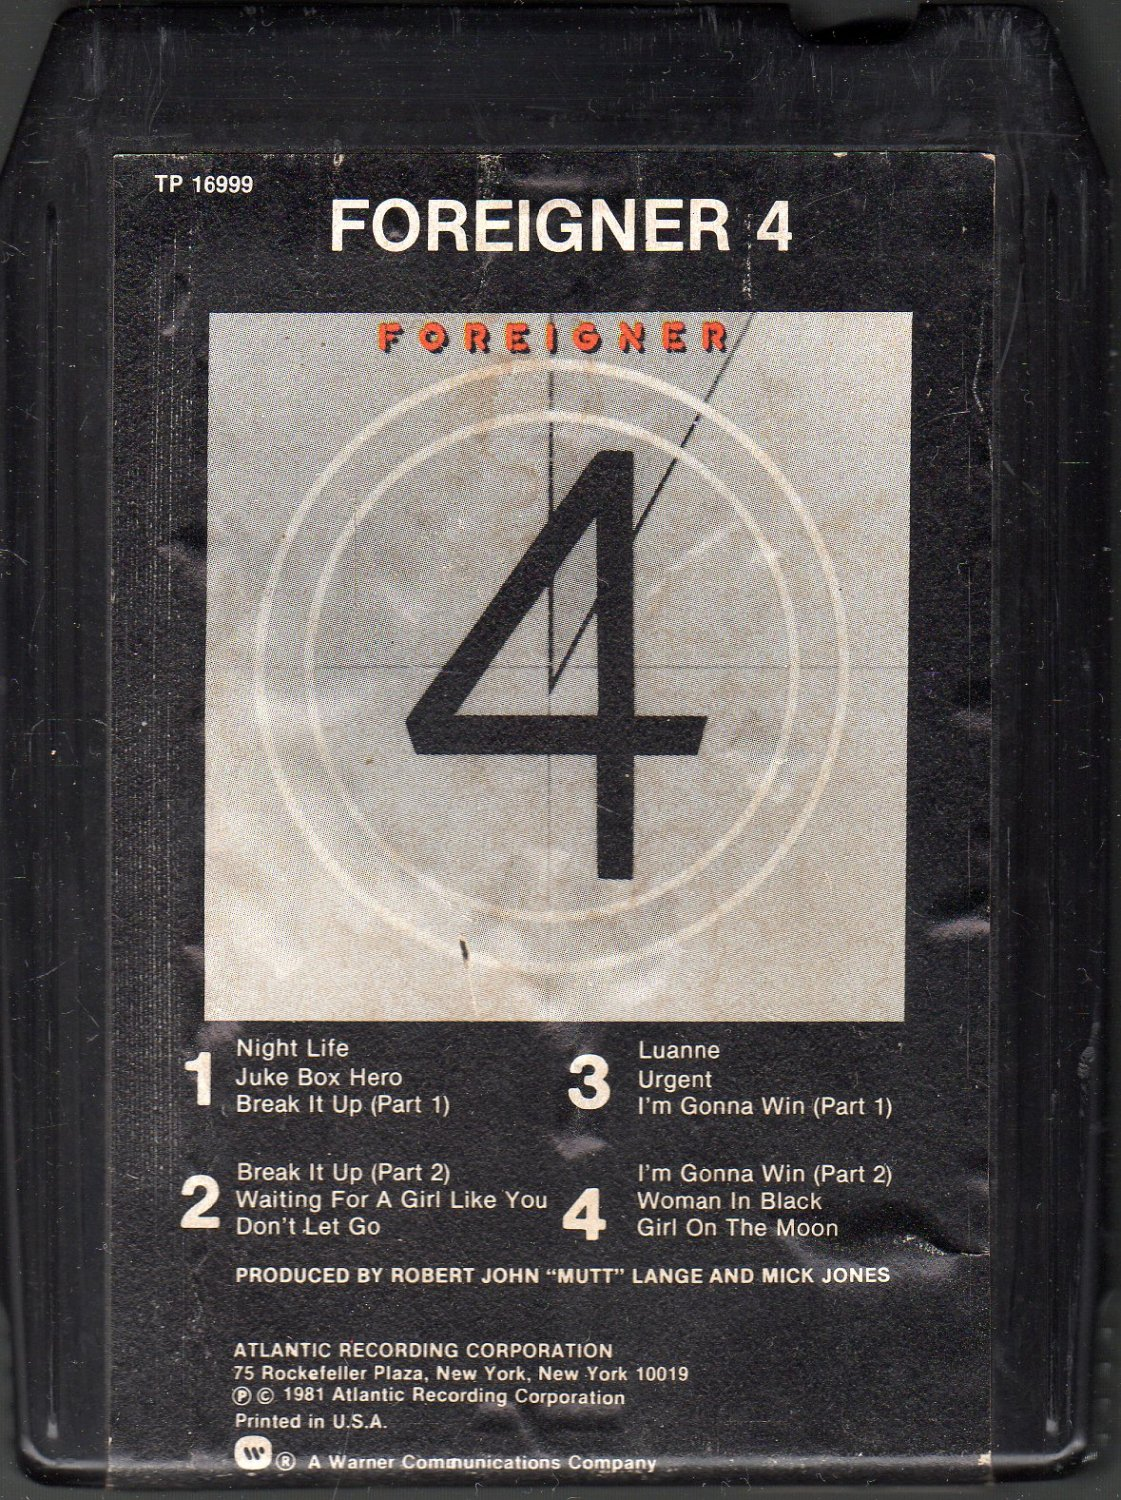 Foreigner - Foreigner 4 1981 WB SOLD 8-track tape